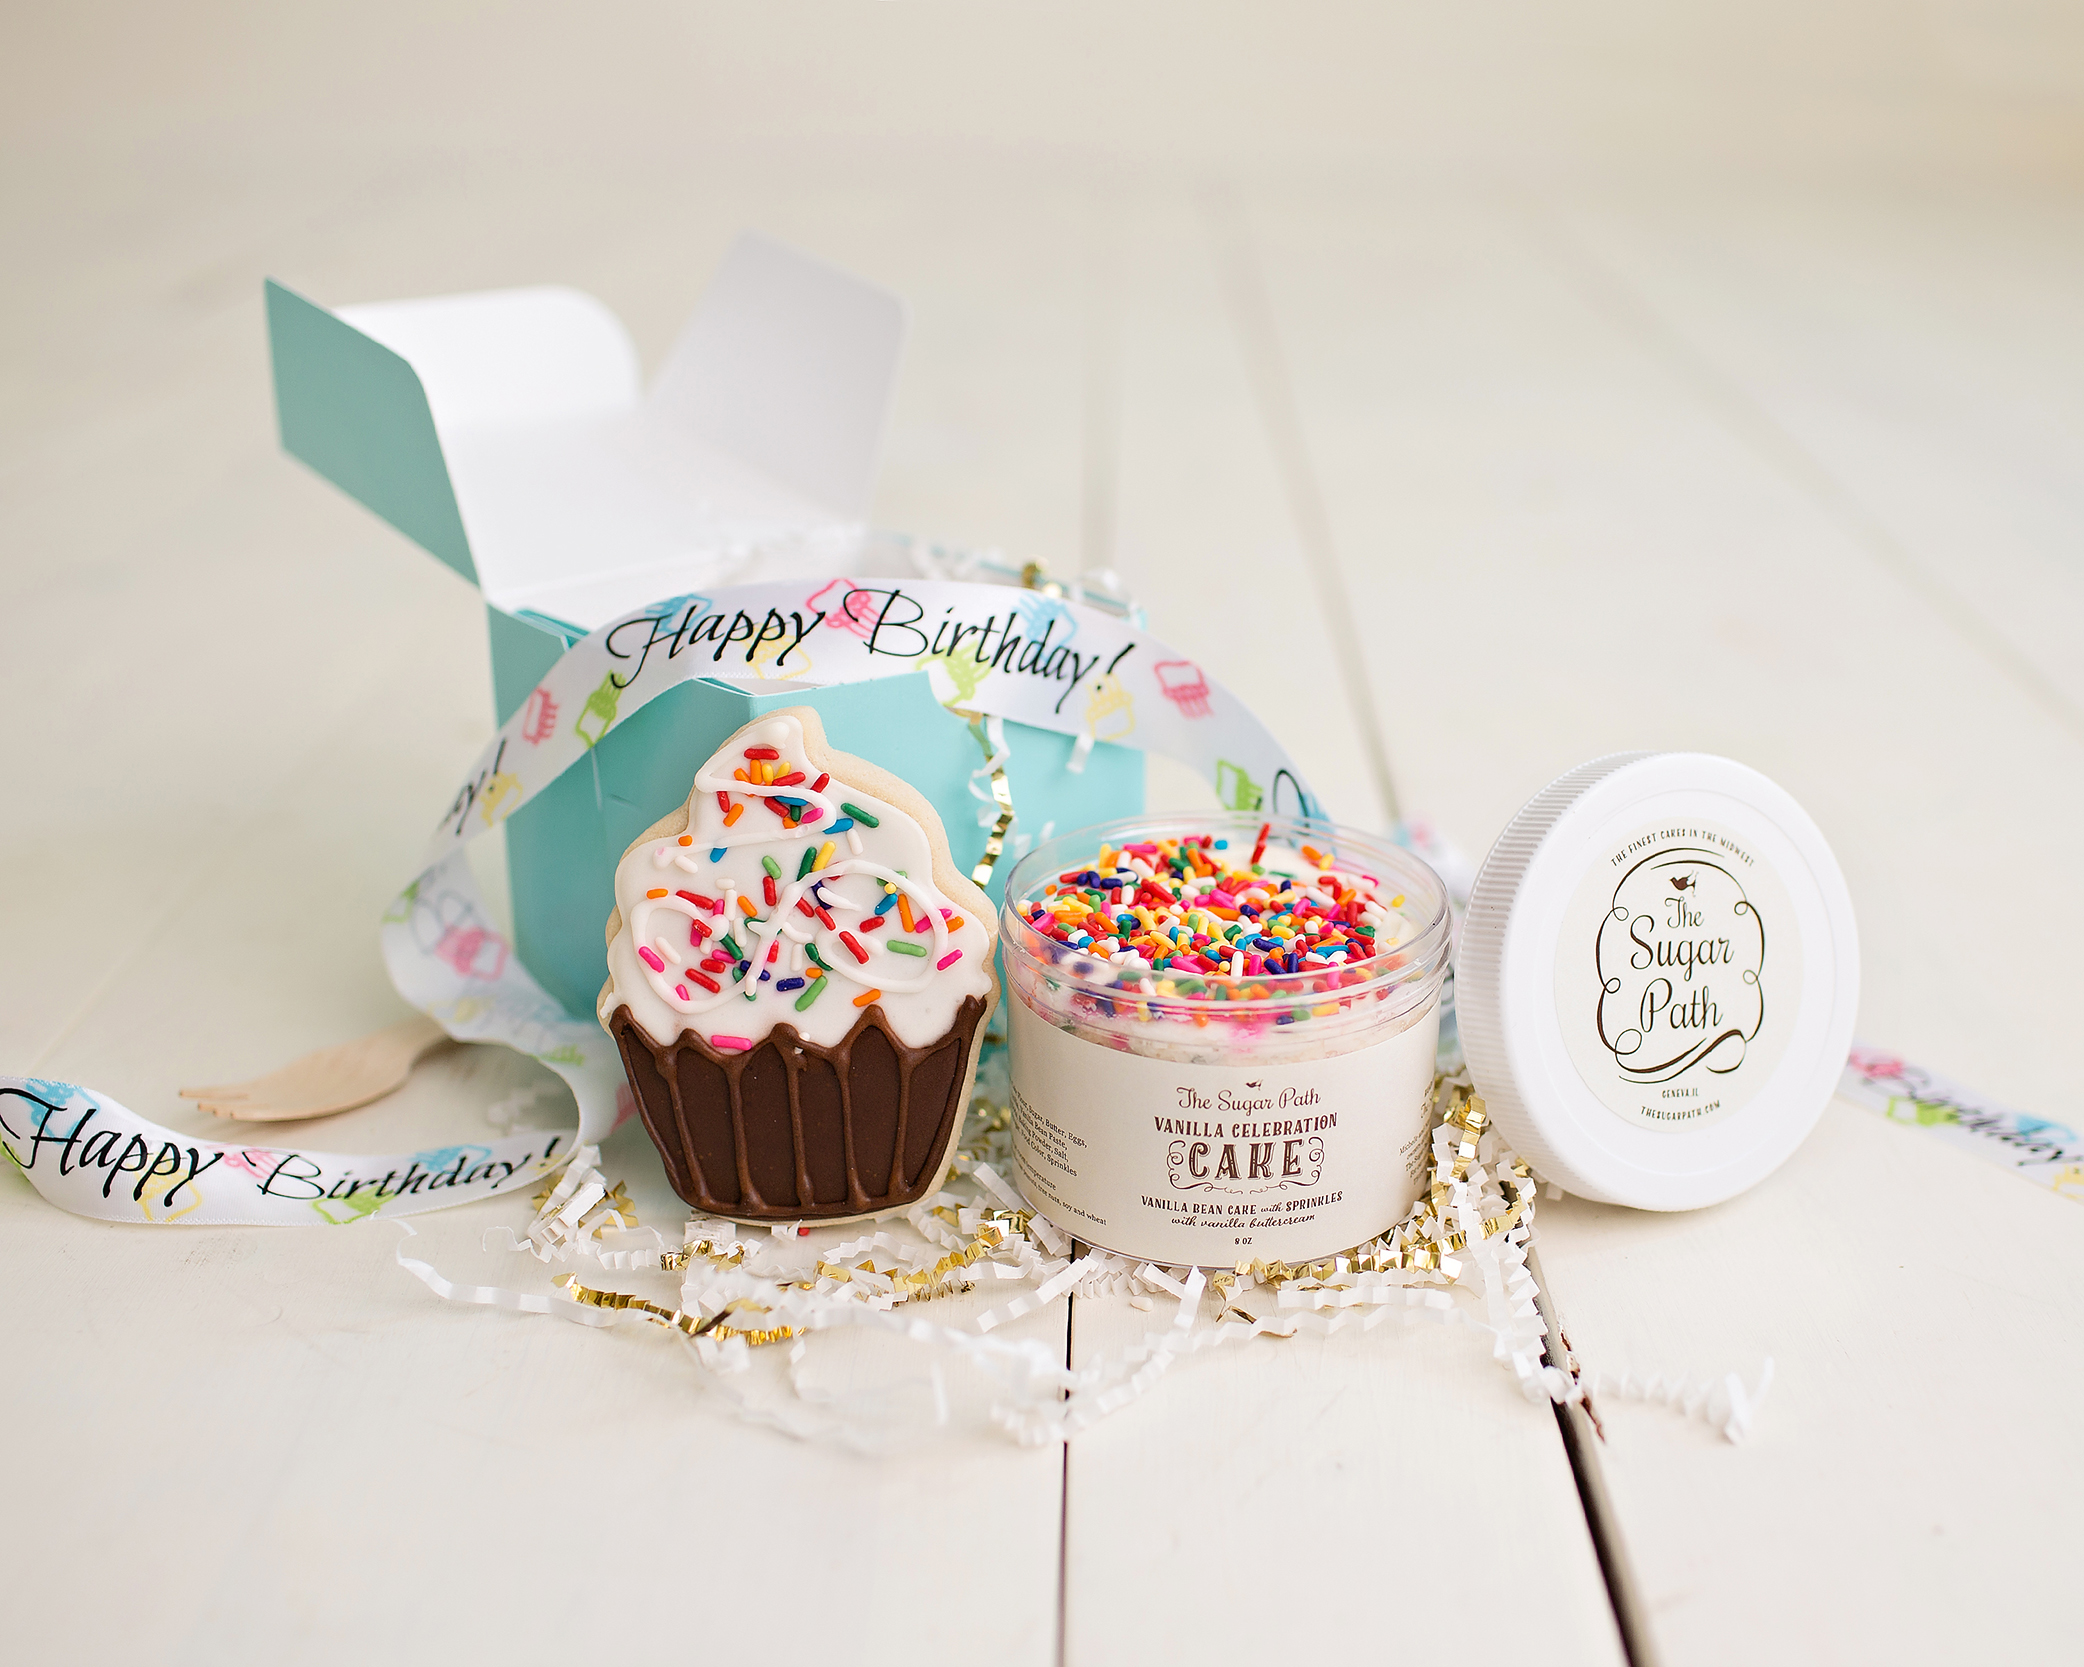 Celebrate a birthday with a Birthday Cube gift! - For shipping or Pick-Up! Birthday Cake Jar and Cupcake Sugar Cookie in a Blue gift box with ribbon!